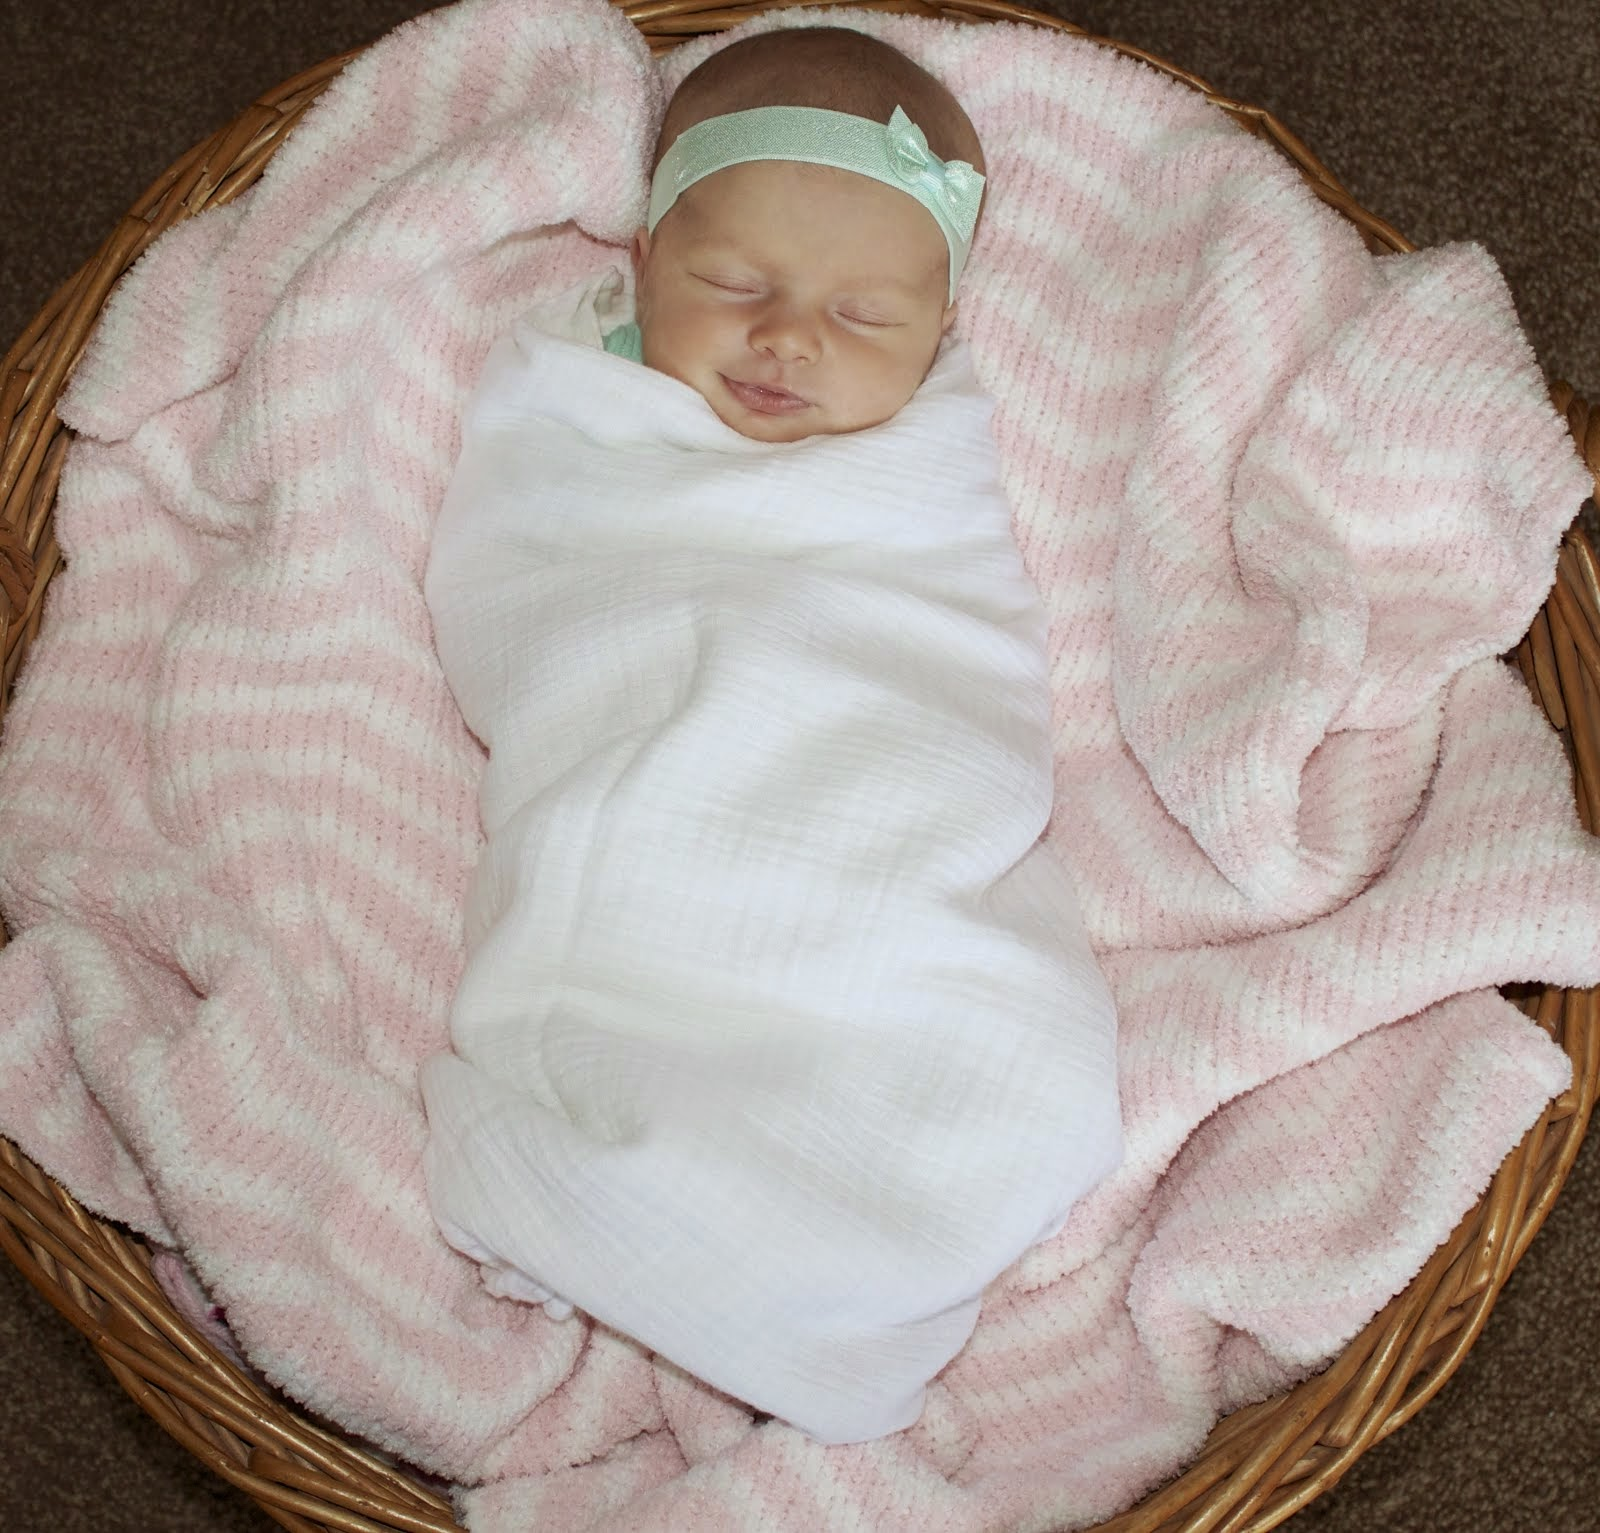 Emma Claire - Born Dec. 19th